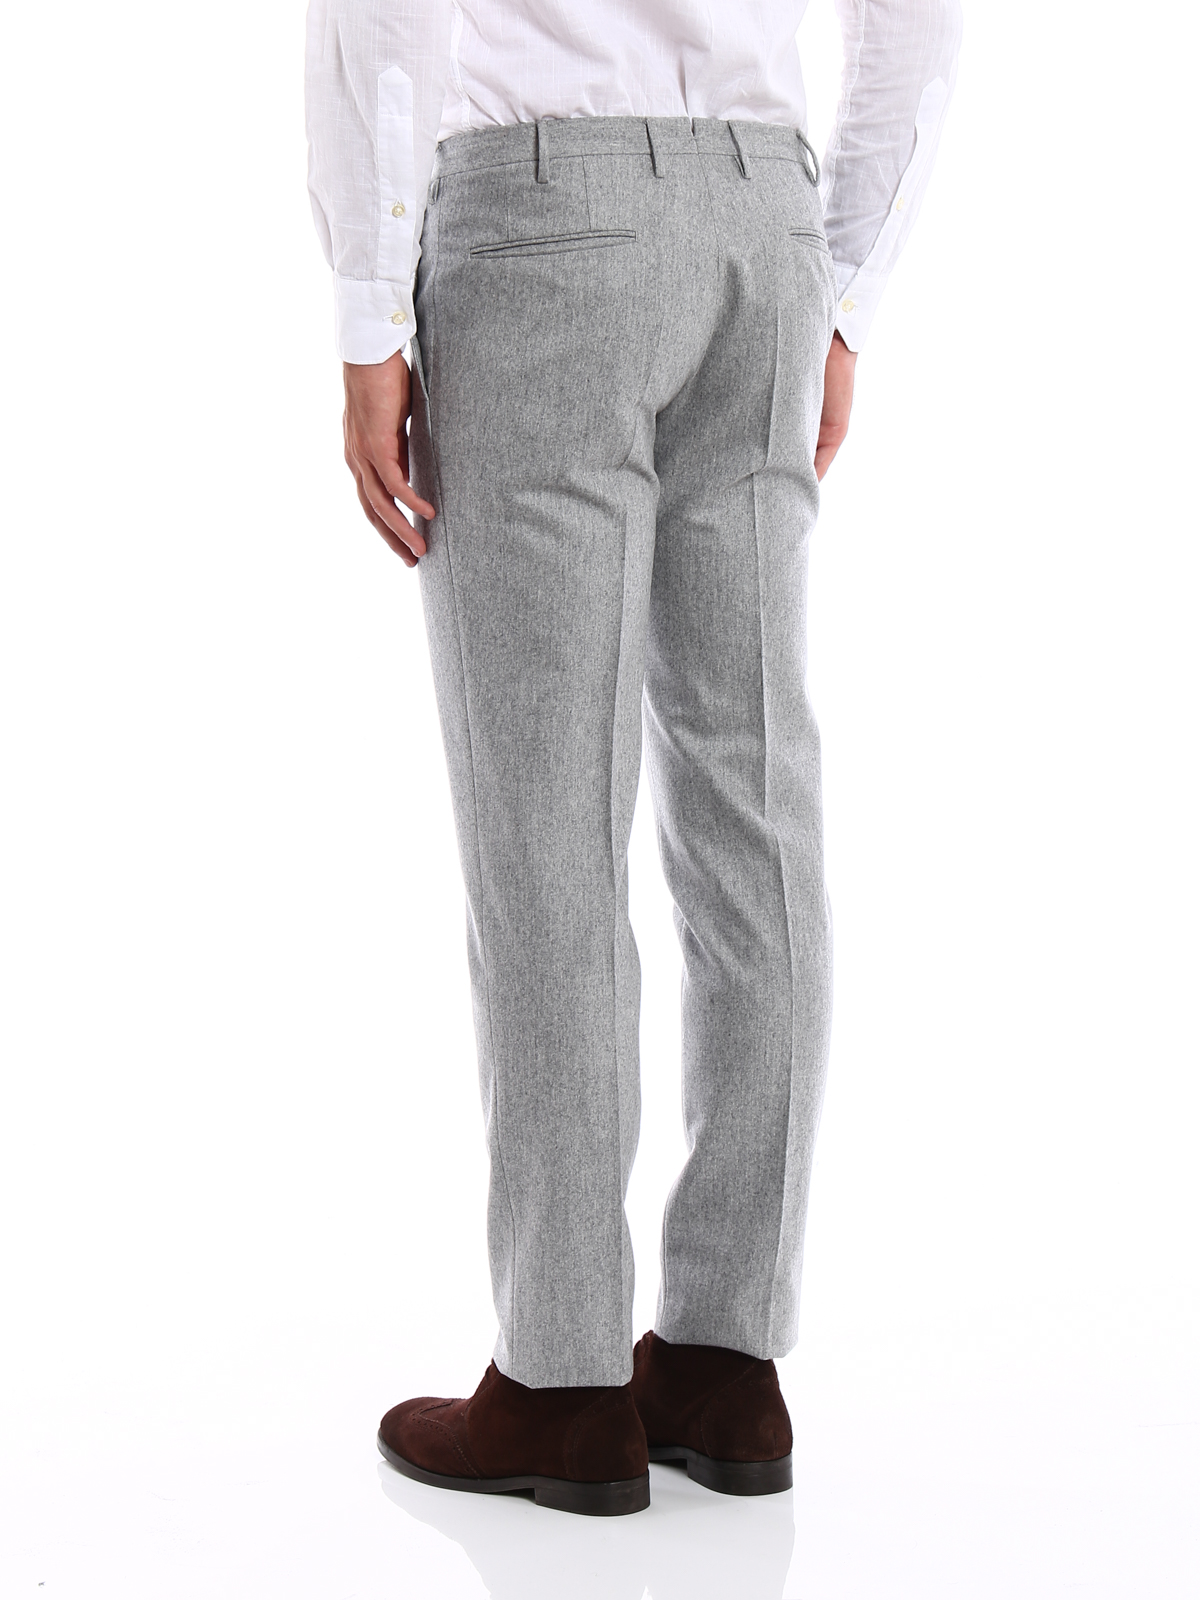 ff34a4fc2974 Incotex - Super 100 s wool flannel trousers - Tailored   Formal ...